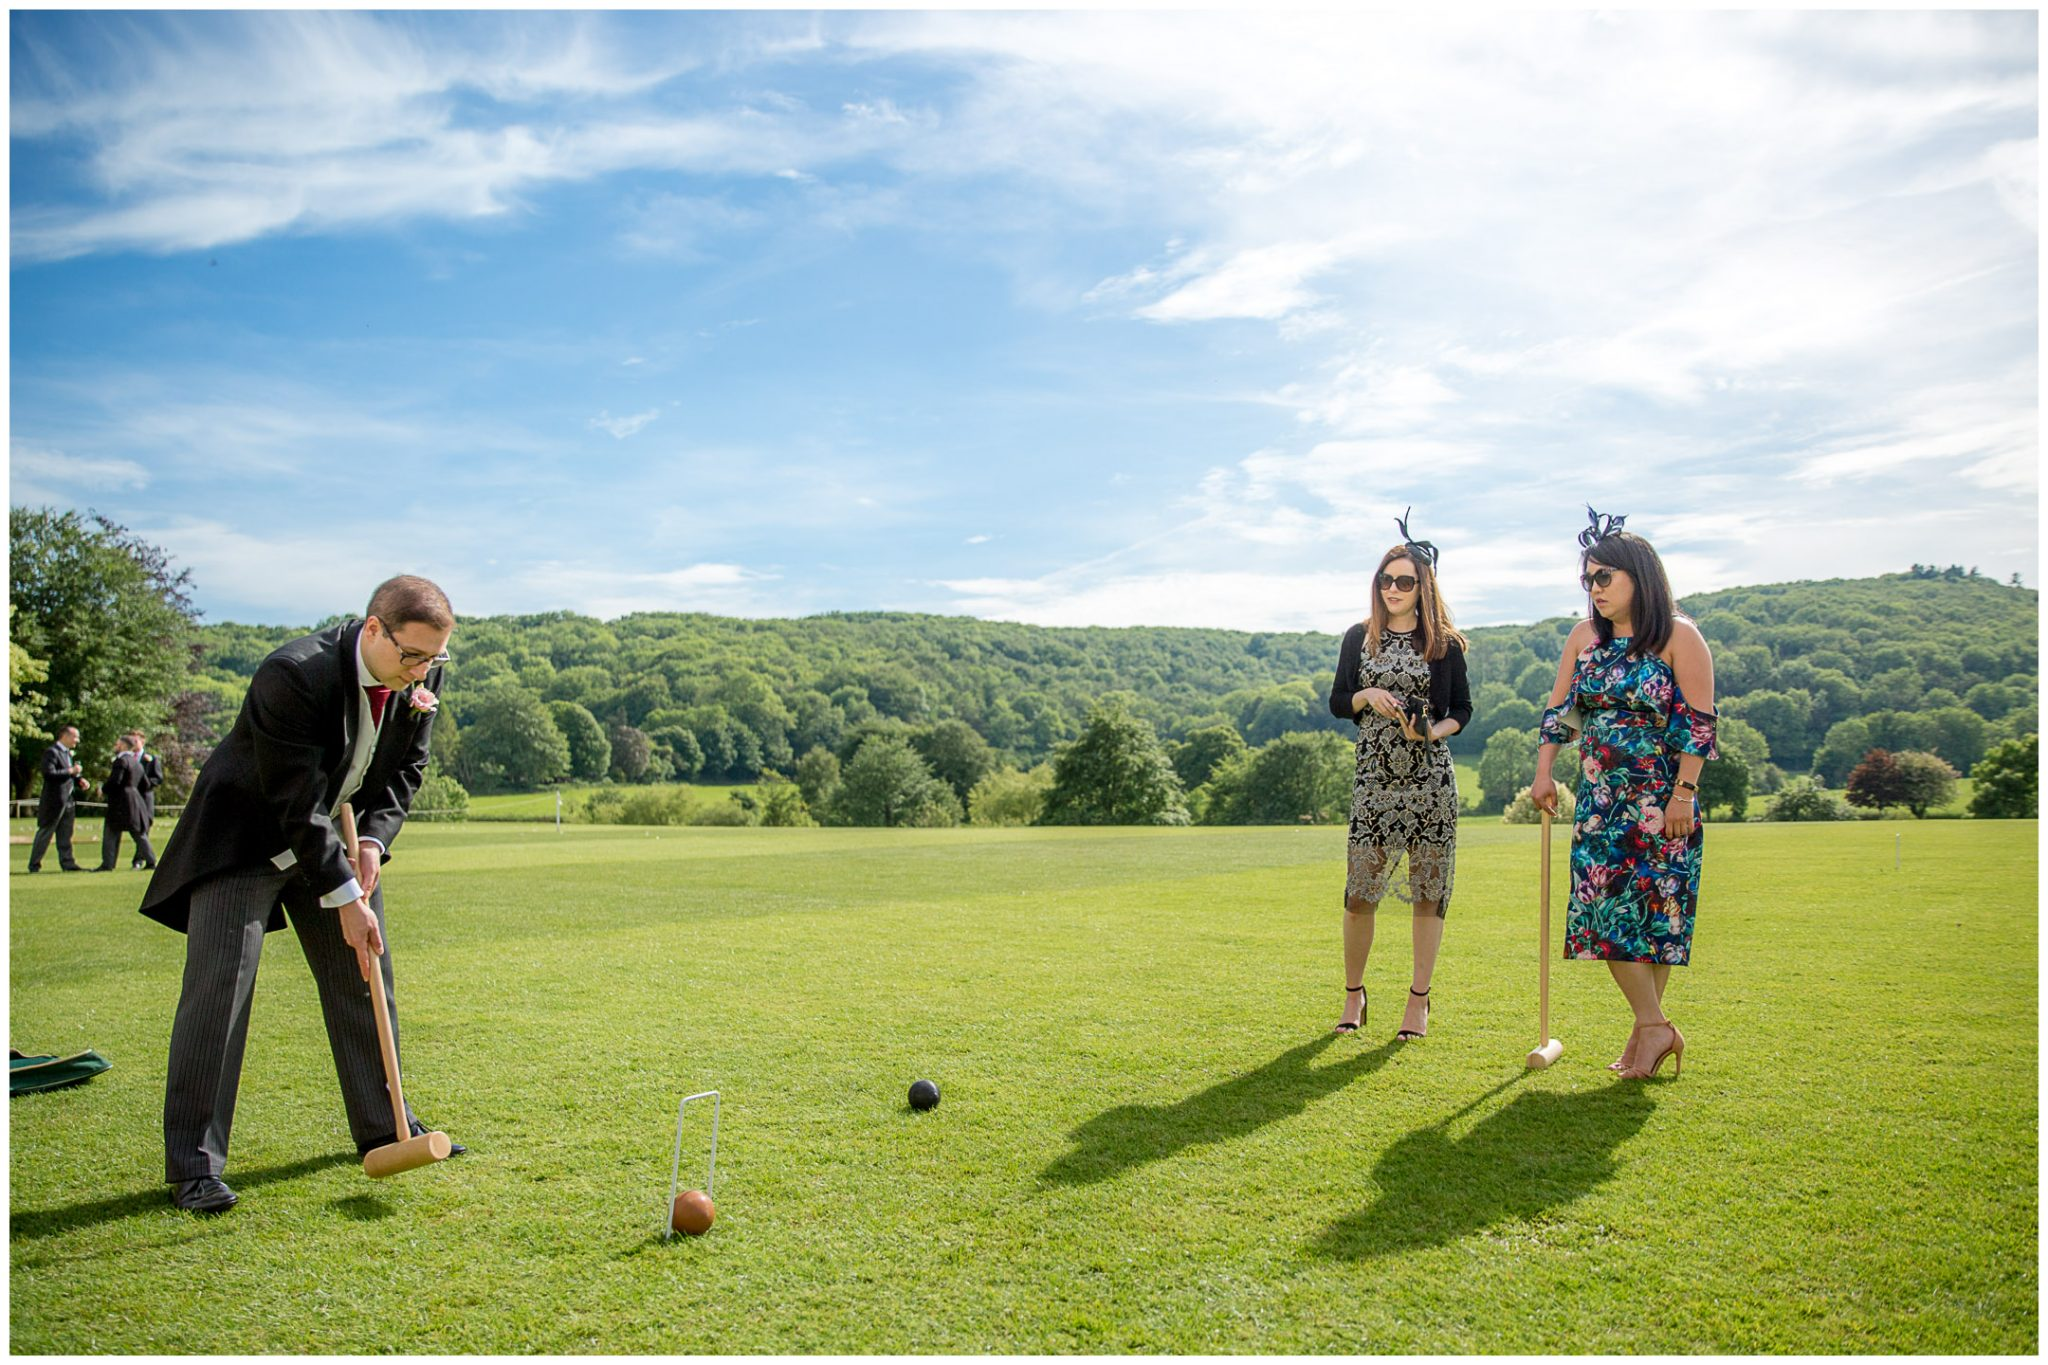 Croquet on the lawn during the drinks reception